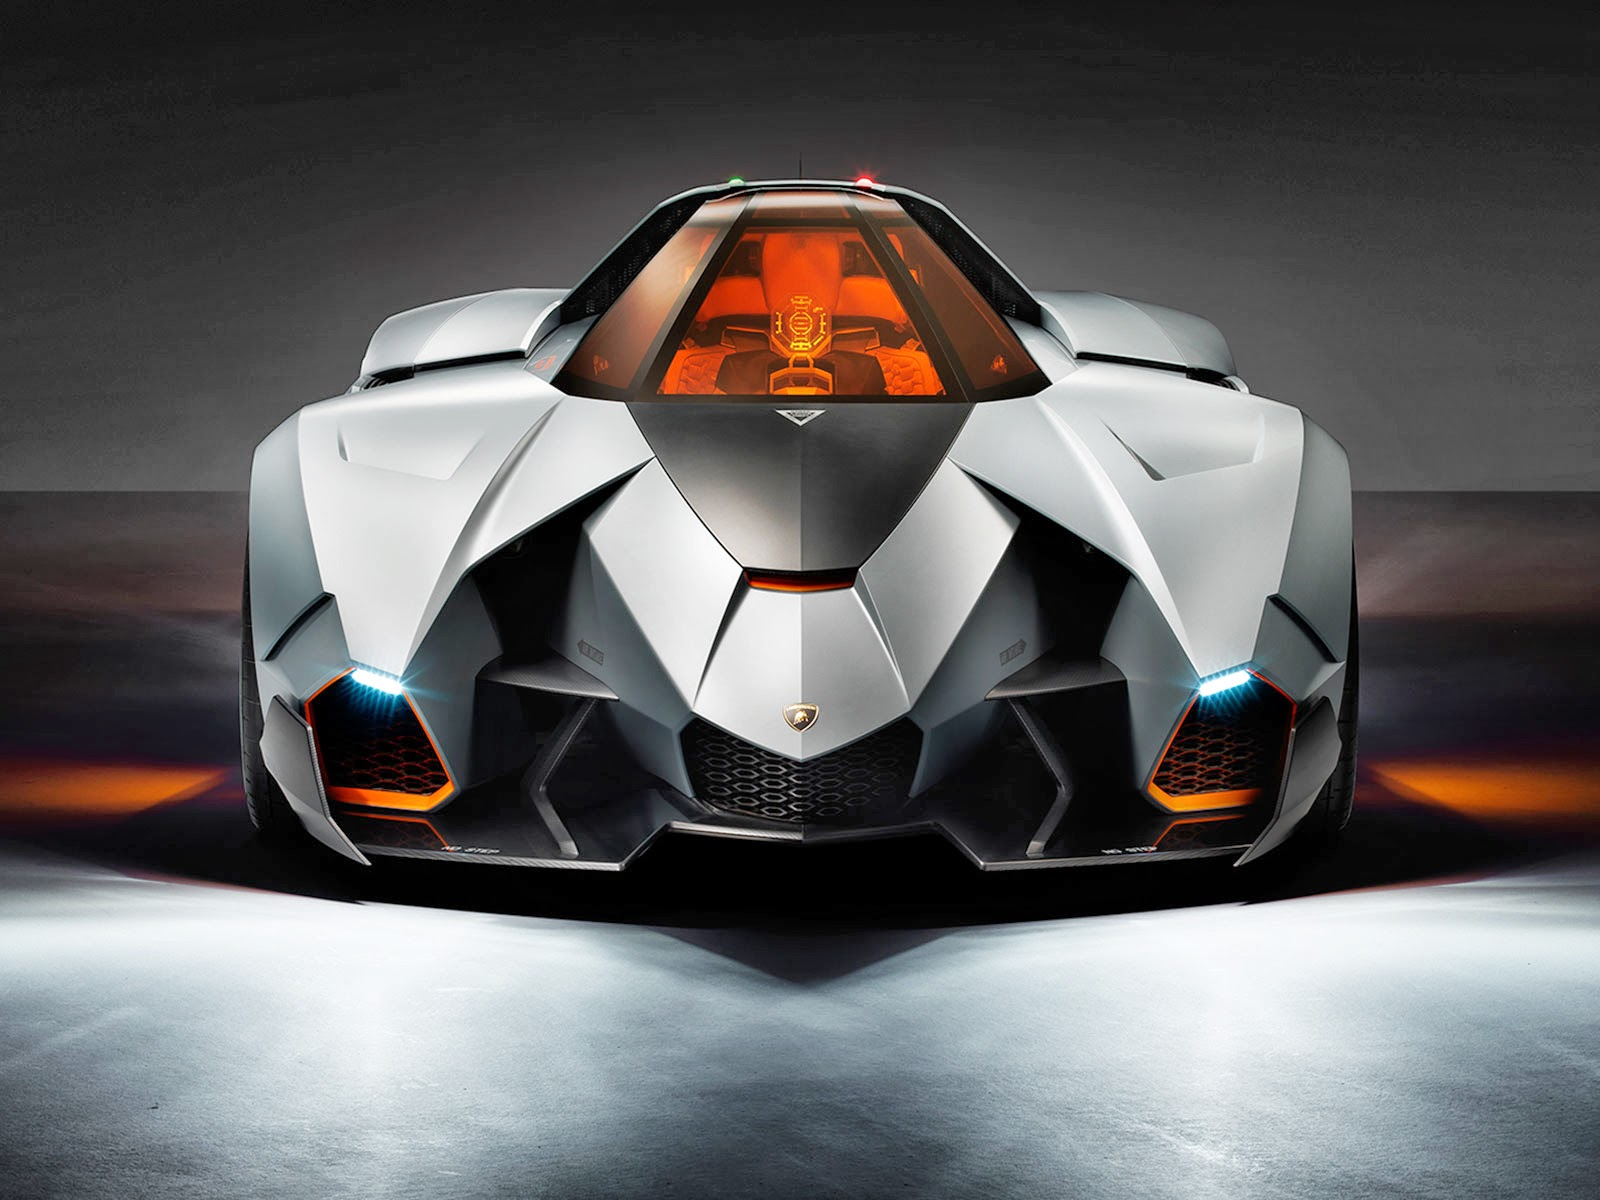 cost of an apache helicopter with Lamborghini Egoista Concept 2013 on Eurocopter EC725 together with 225517 Death Star Reflections besides T129 Mangusta also 50 Best Full Sleeve Tattoos moreover Jets Name Is Just Plane Awesome.